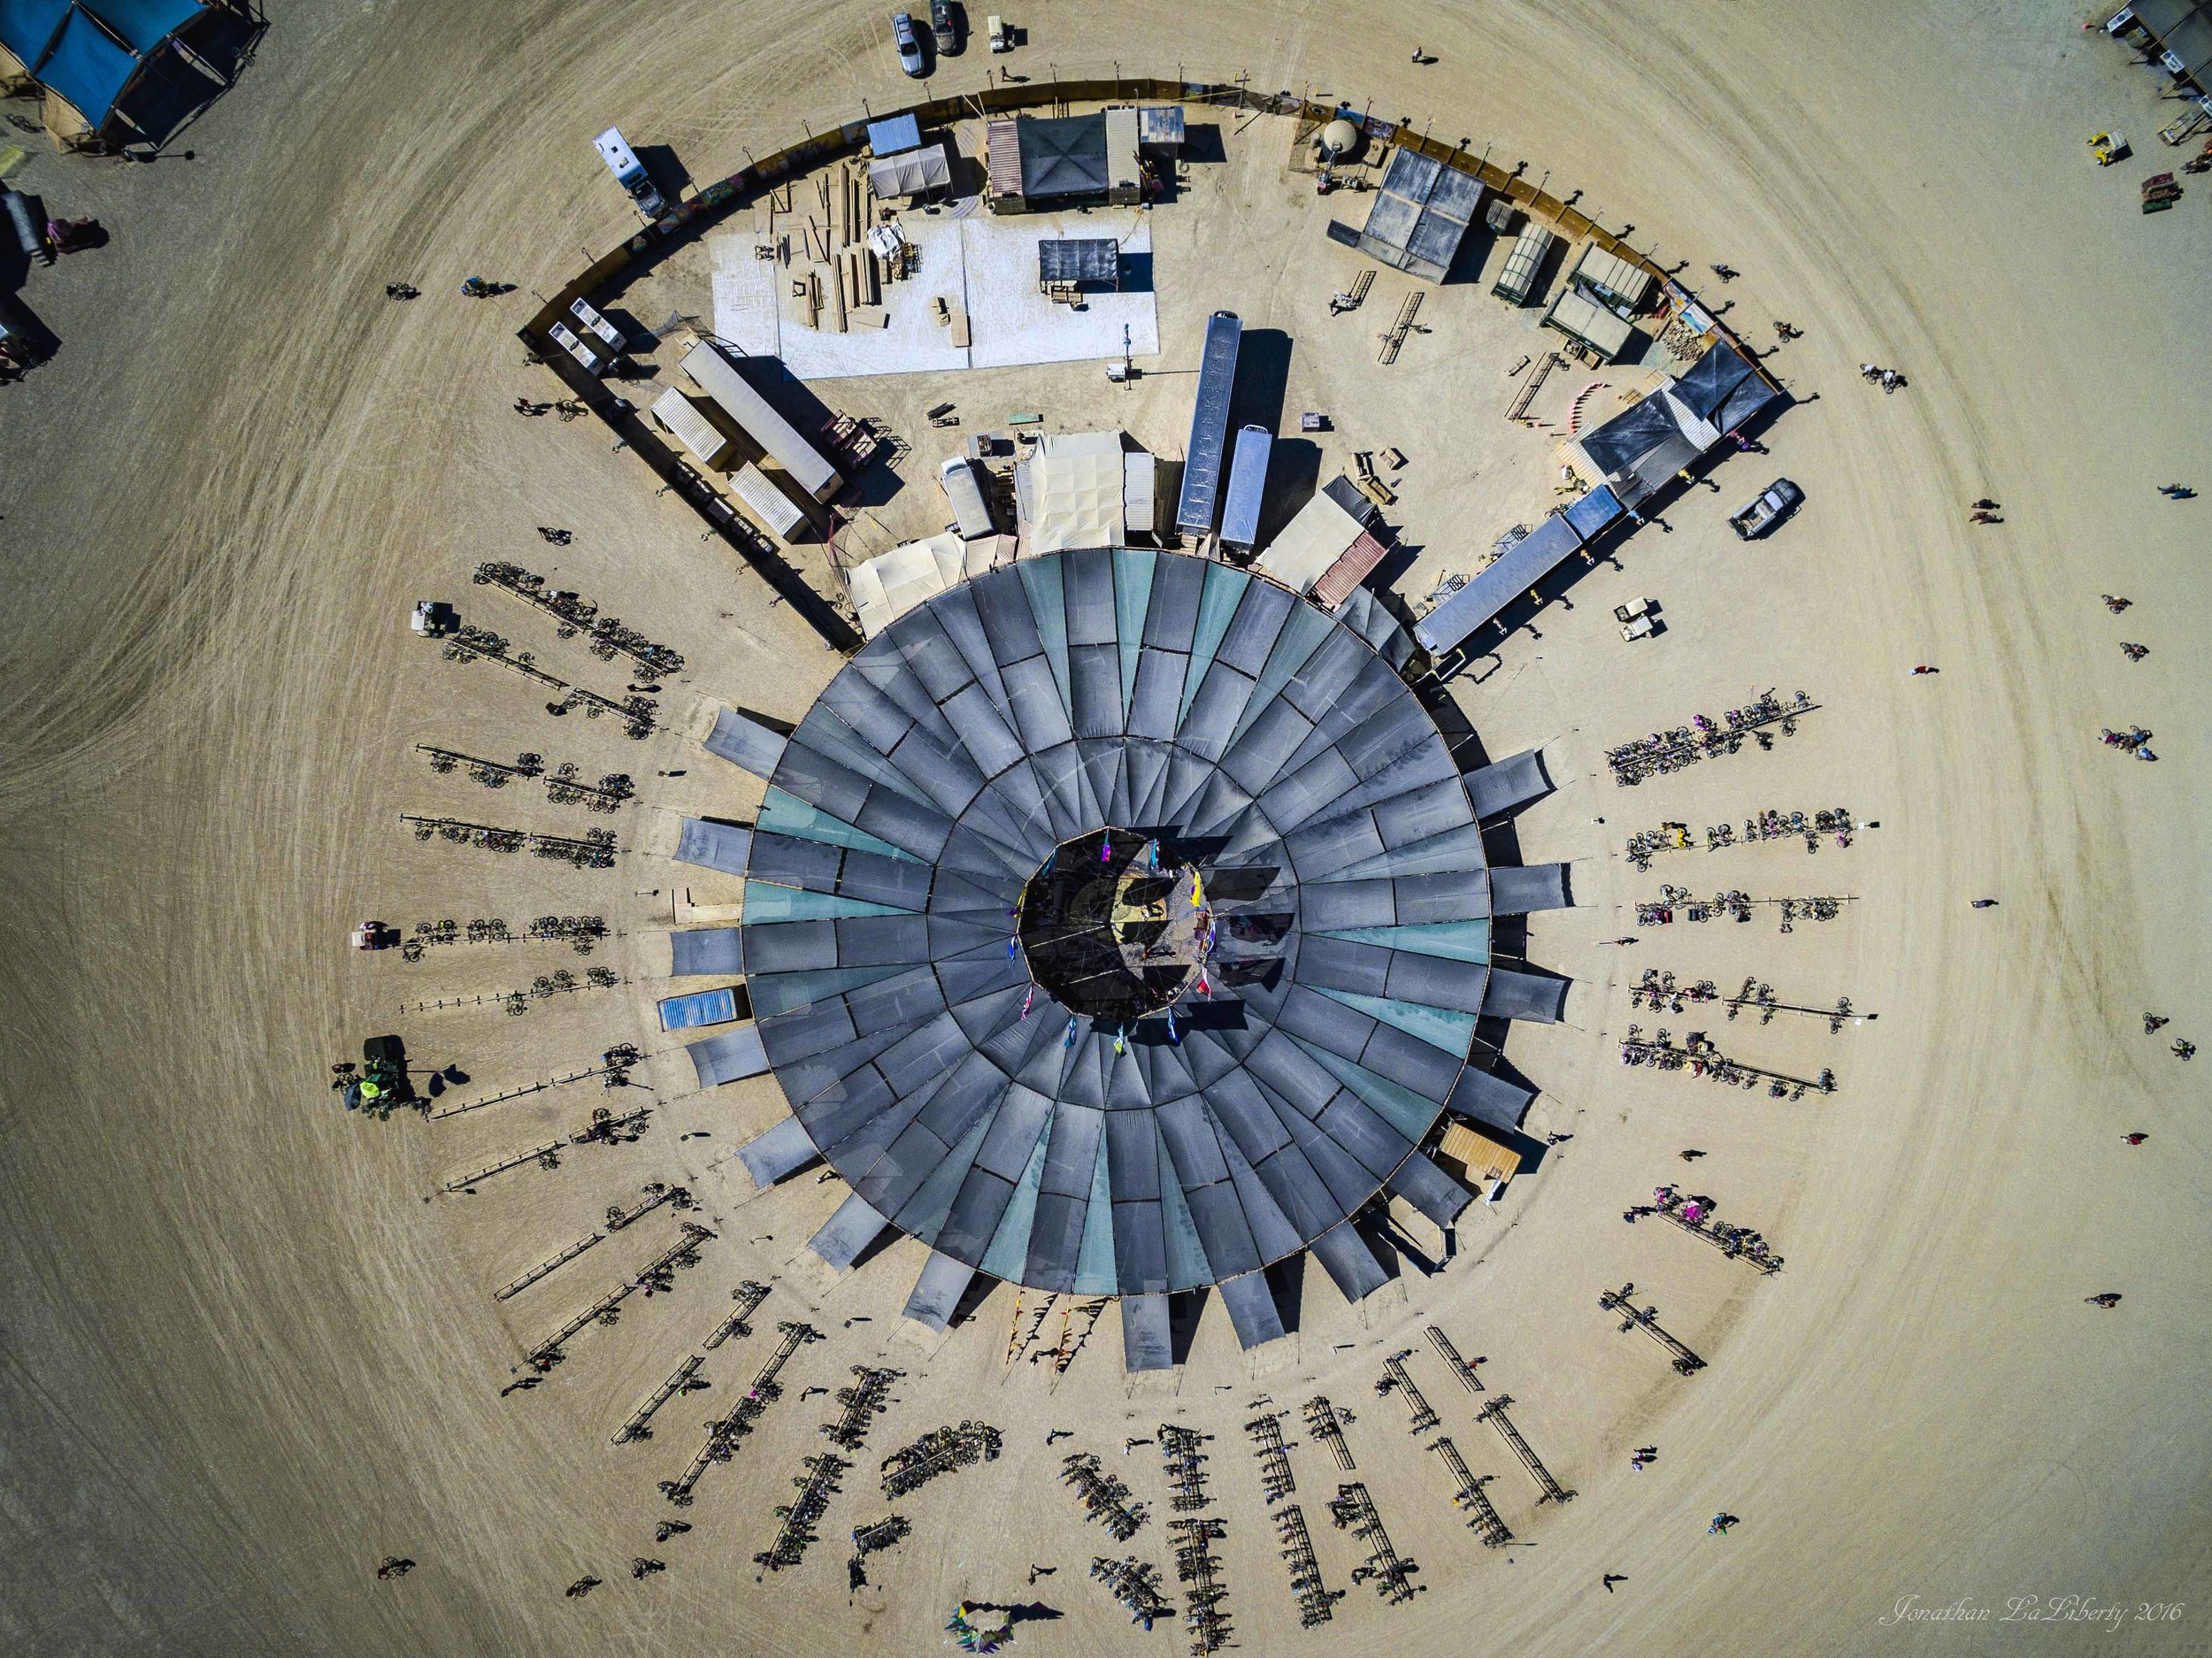 Burning Man 2016 Center Camp Drone Photography